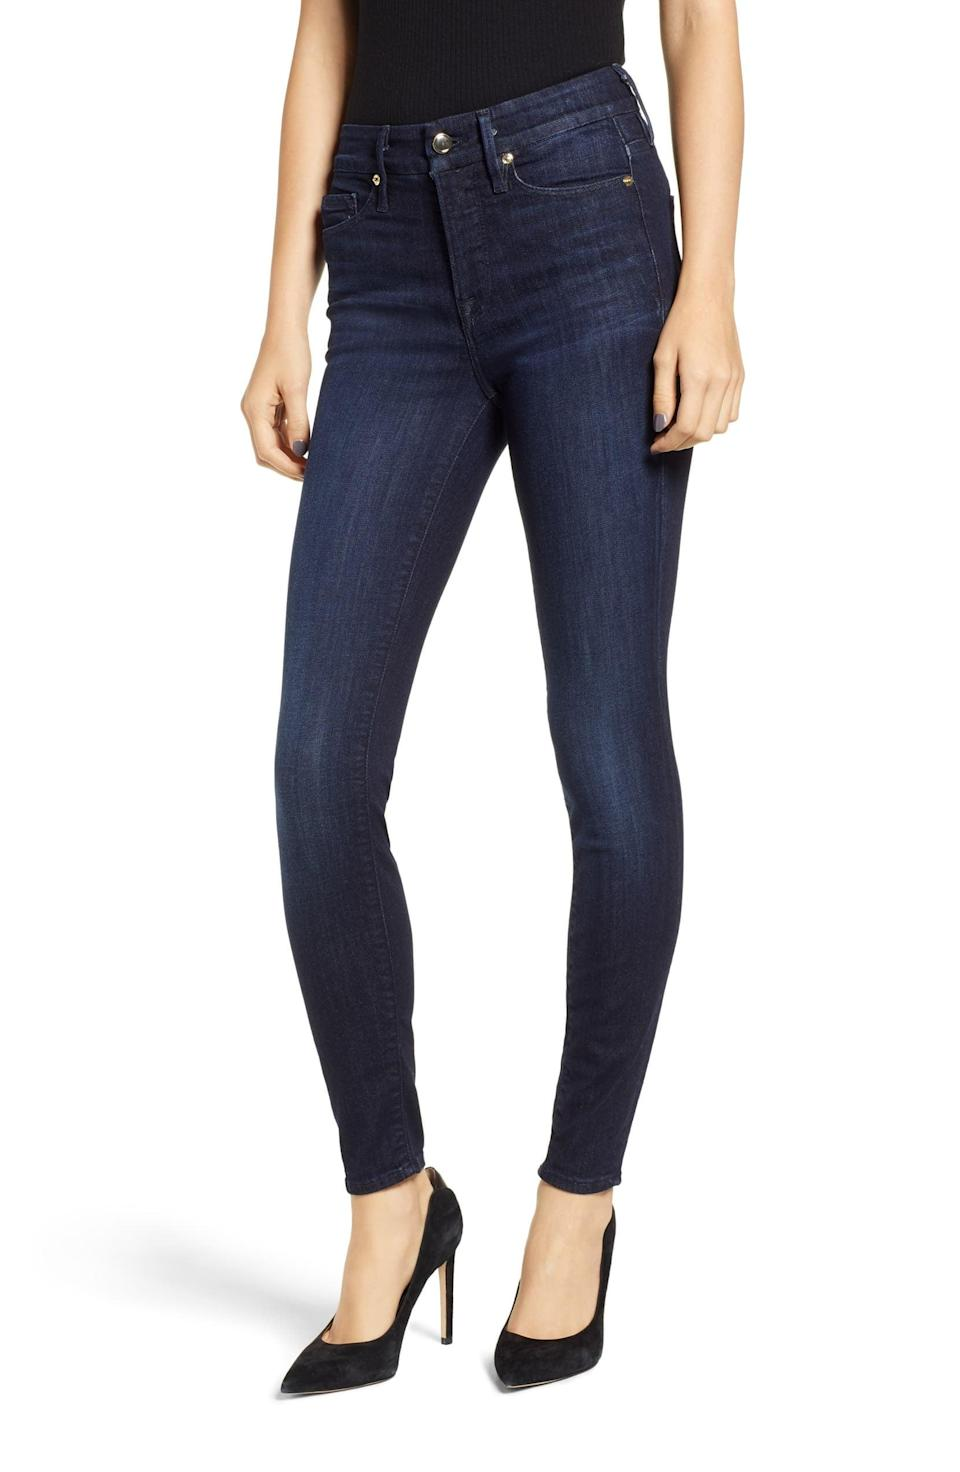 "<p>We gravitate toward <a href=""https://www.popsugar.com/buy/Good-American-denim-551946?p_name=Good%20American%20denim&retailer=shop.nordstrom.com&pid=551946&price=165&evar1=fab%3Aus&evar9=34097656&evar98=https%3A%2F%2Fwww.popsugar.com%2Ffashion%2Fphoto-gallery%2F34097656%2Fimage%2F34097660%2FClassic-Skinny-Jean&list1=shopping%2Cframe%2Cstyle%20how%20to&prop13=mobile&pdata=1"" class=""link rapid-noclick-resp"" rel=""nofollow noopener"" target=""_blank"" data-ylk=""slk:Good American denim"">Good American denim</a> ($165) because they craft a pared-down style and a perfect fit. A pair like this is worth the investment. They'll last, flatter your figure, and work with heels or flats - and you don't have to be embarrassed about embellishments, rips, or holes. Think of these as ""grown-up jeans.""</p>"